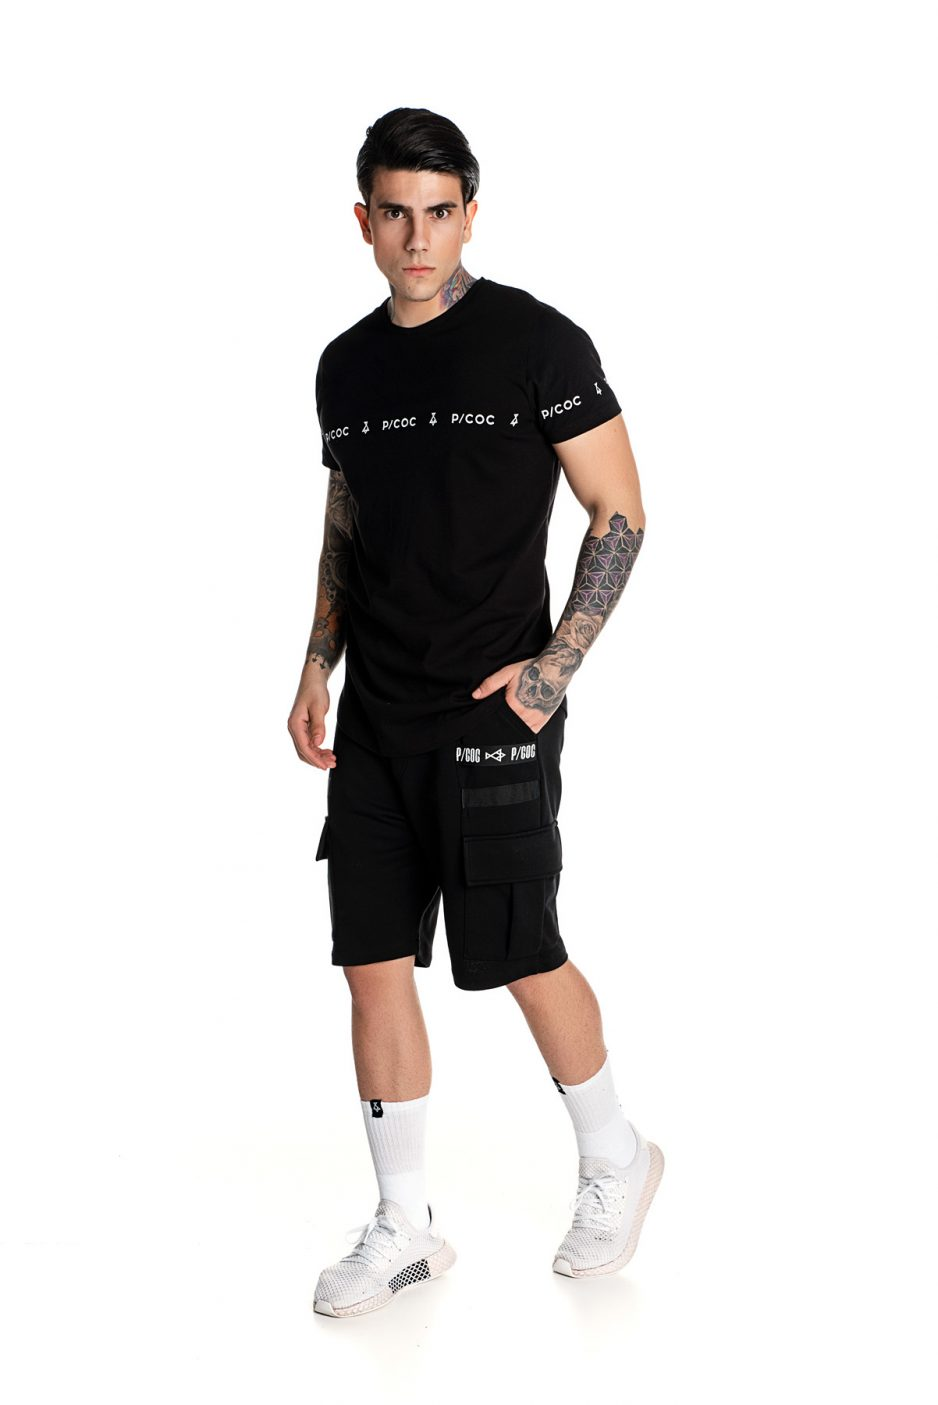 Black P/COC t-shirt with logo on sleeves